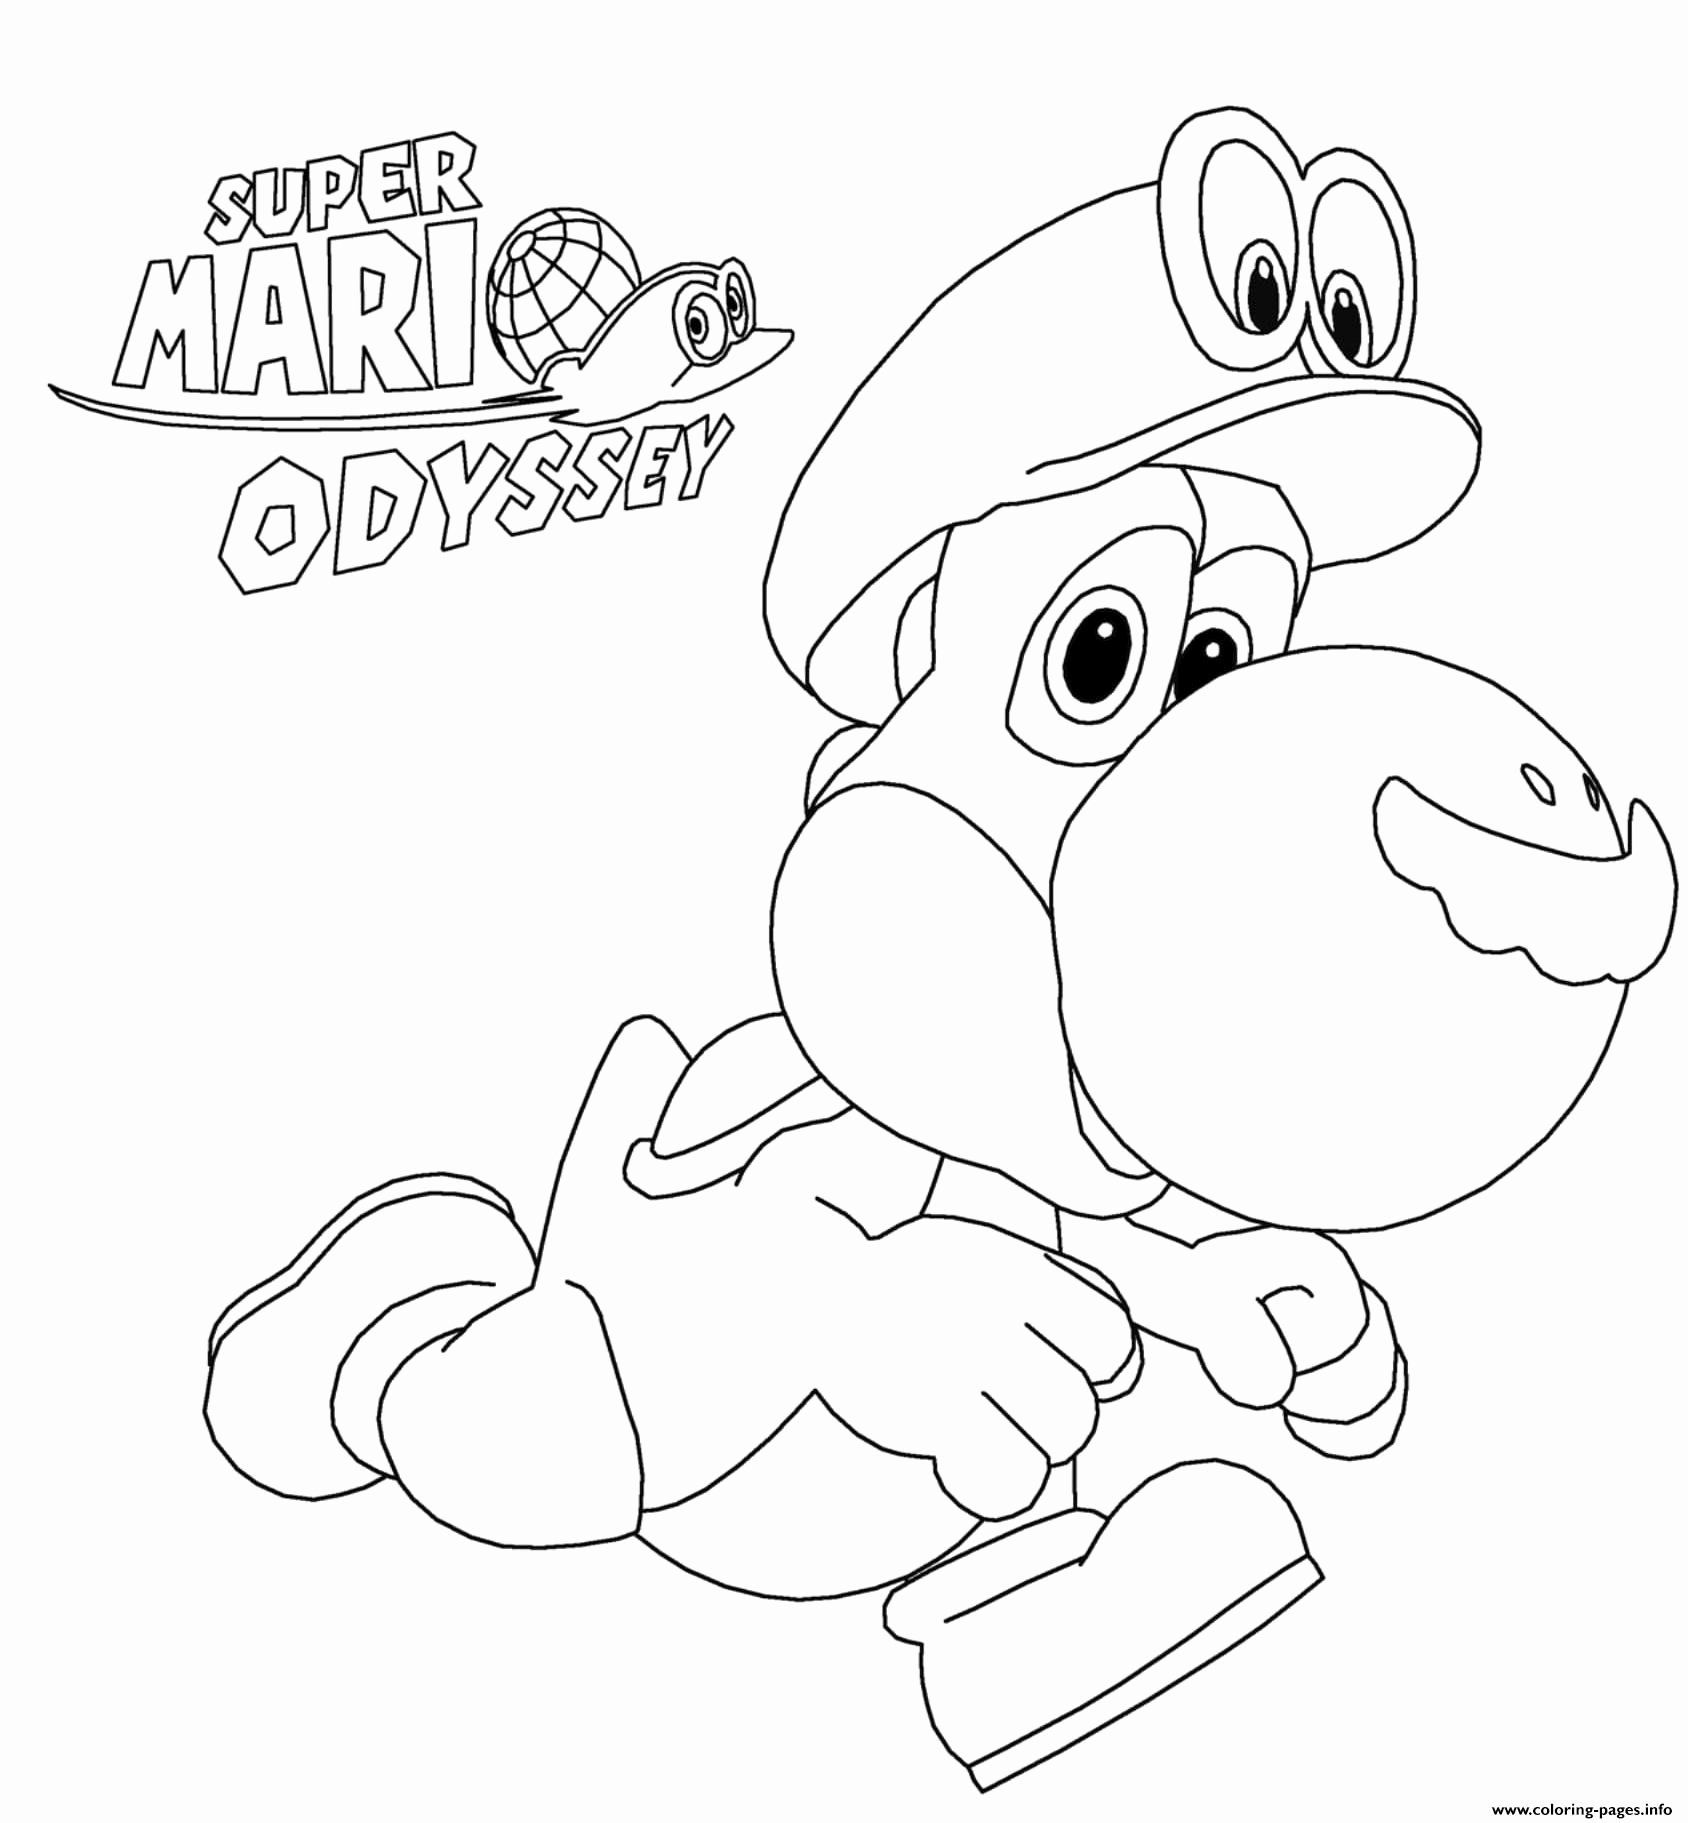 Cartoon Coloring To Print Elegant 46 Nintendo Kirby Coloring Pages To Print Mario Coloring Pages Bird Coloring Pages Coloring Pages To Print